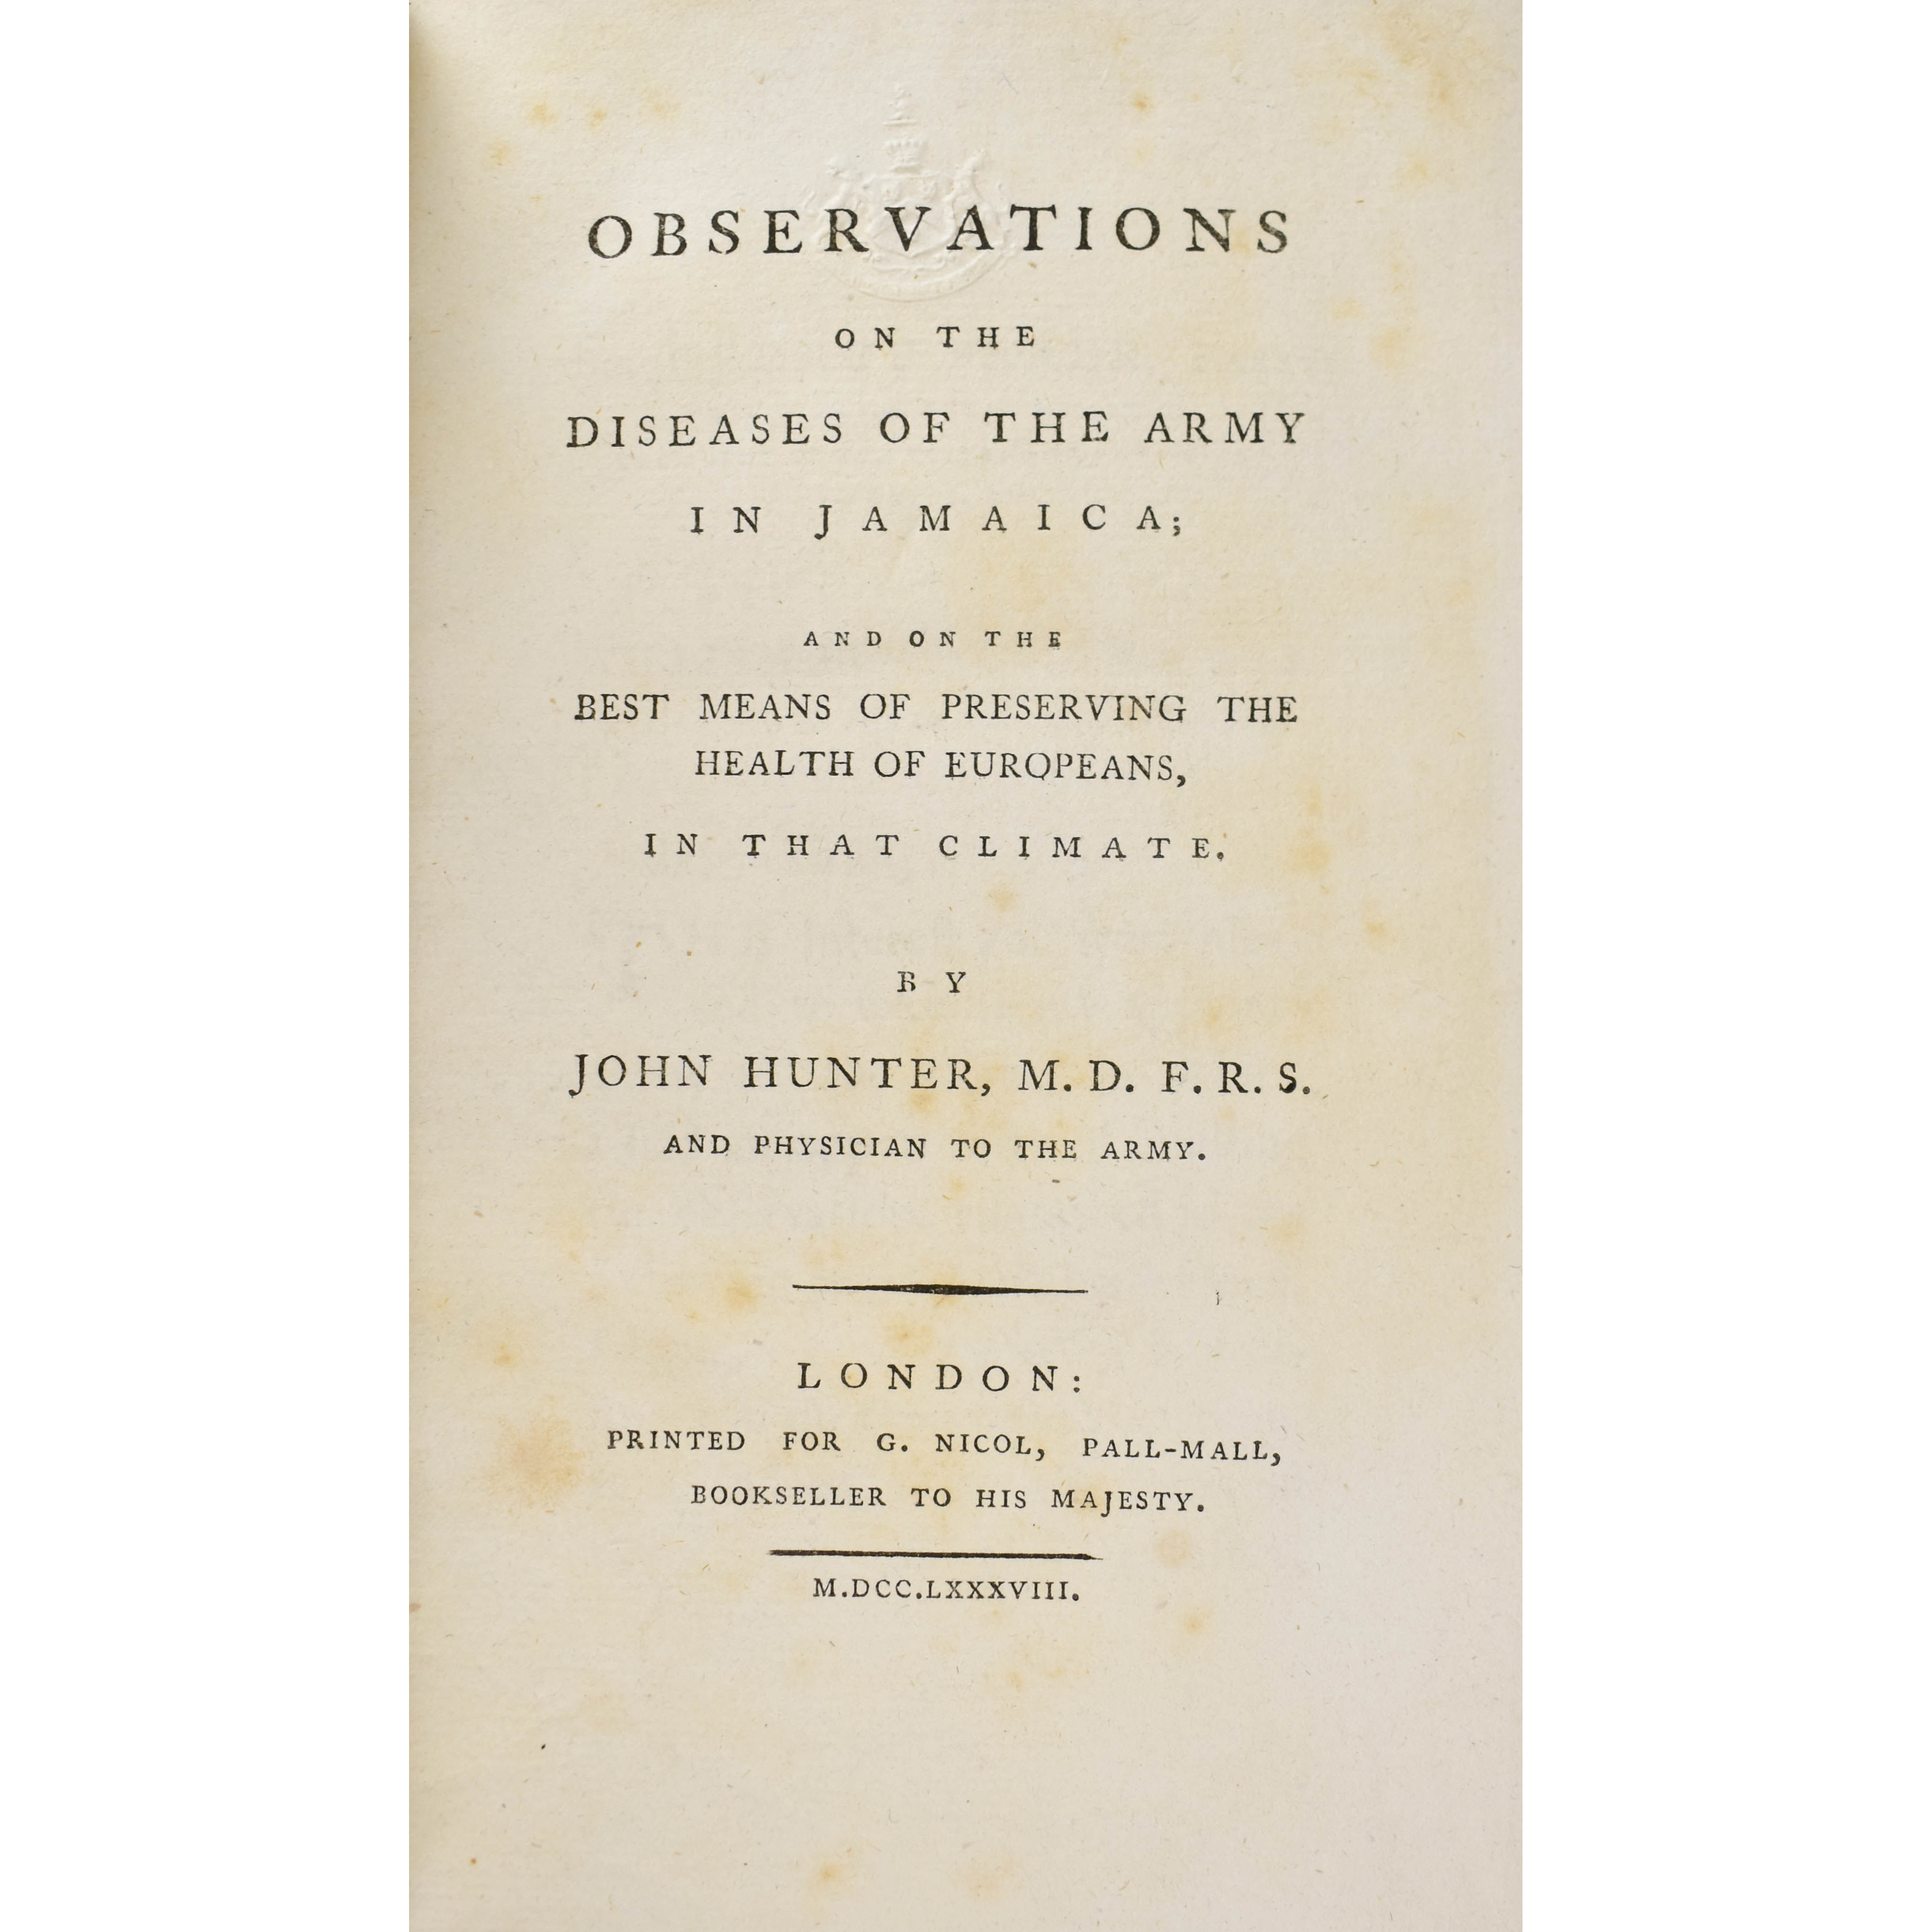 Observations on the Diseases of the Army in Jamaica (photo 1)